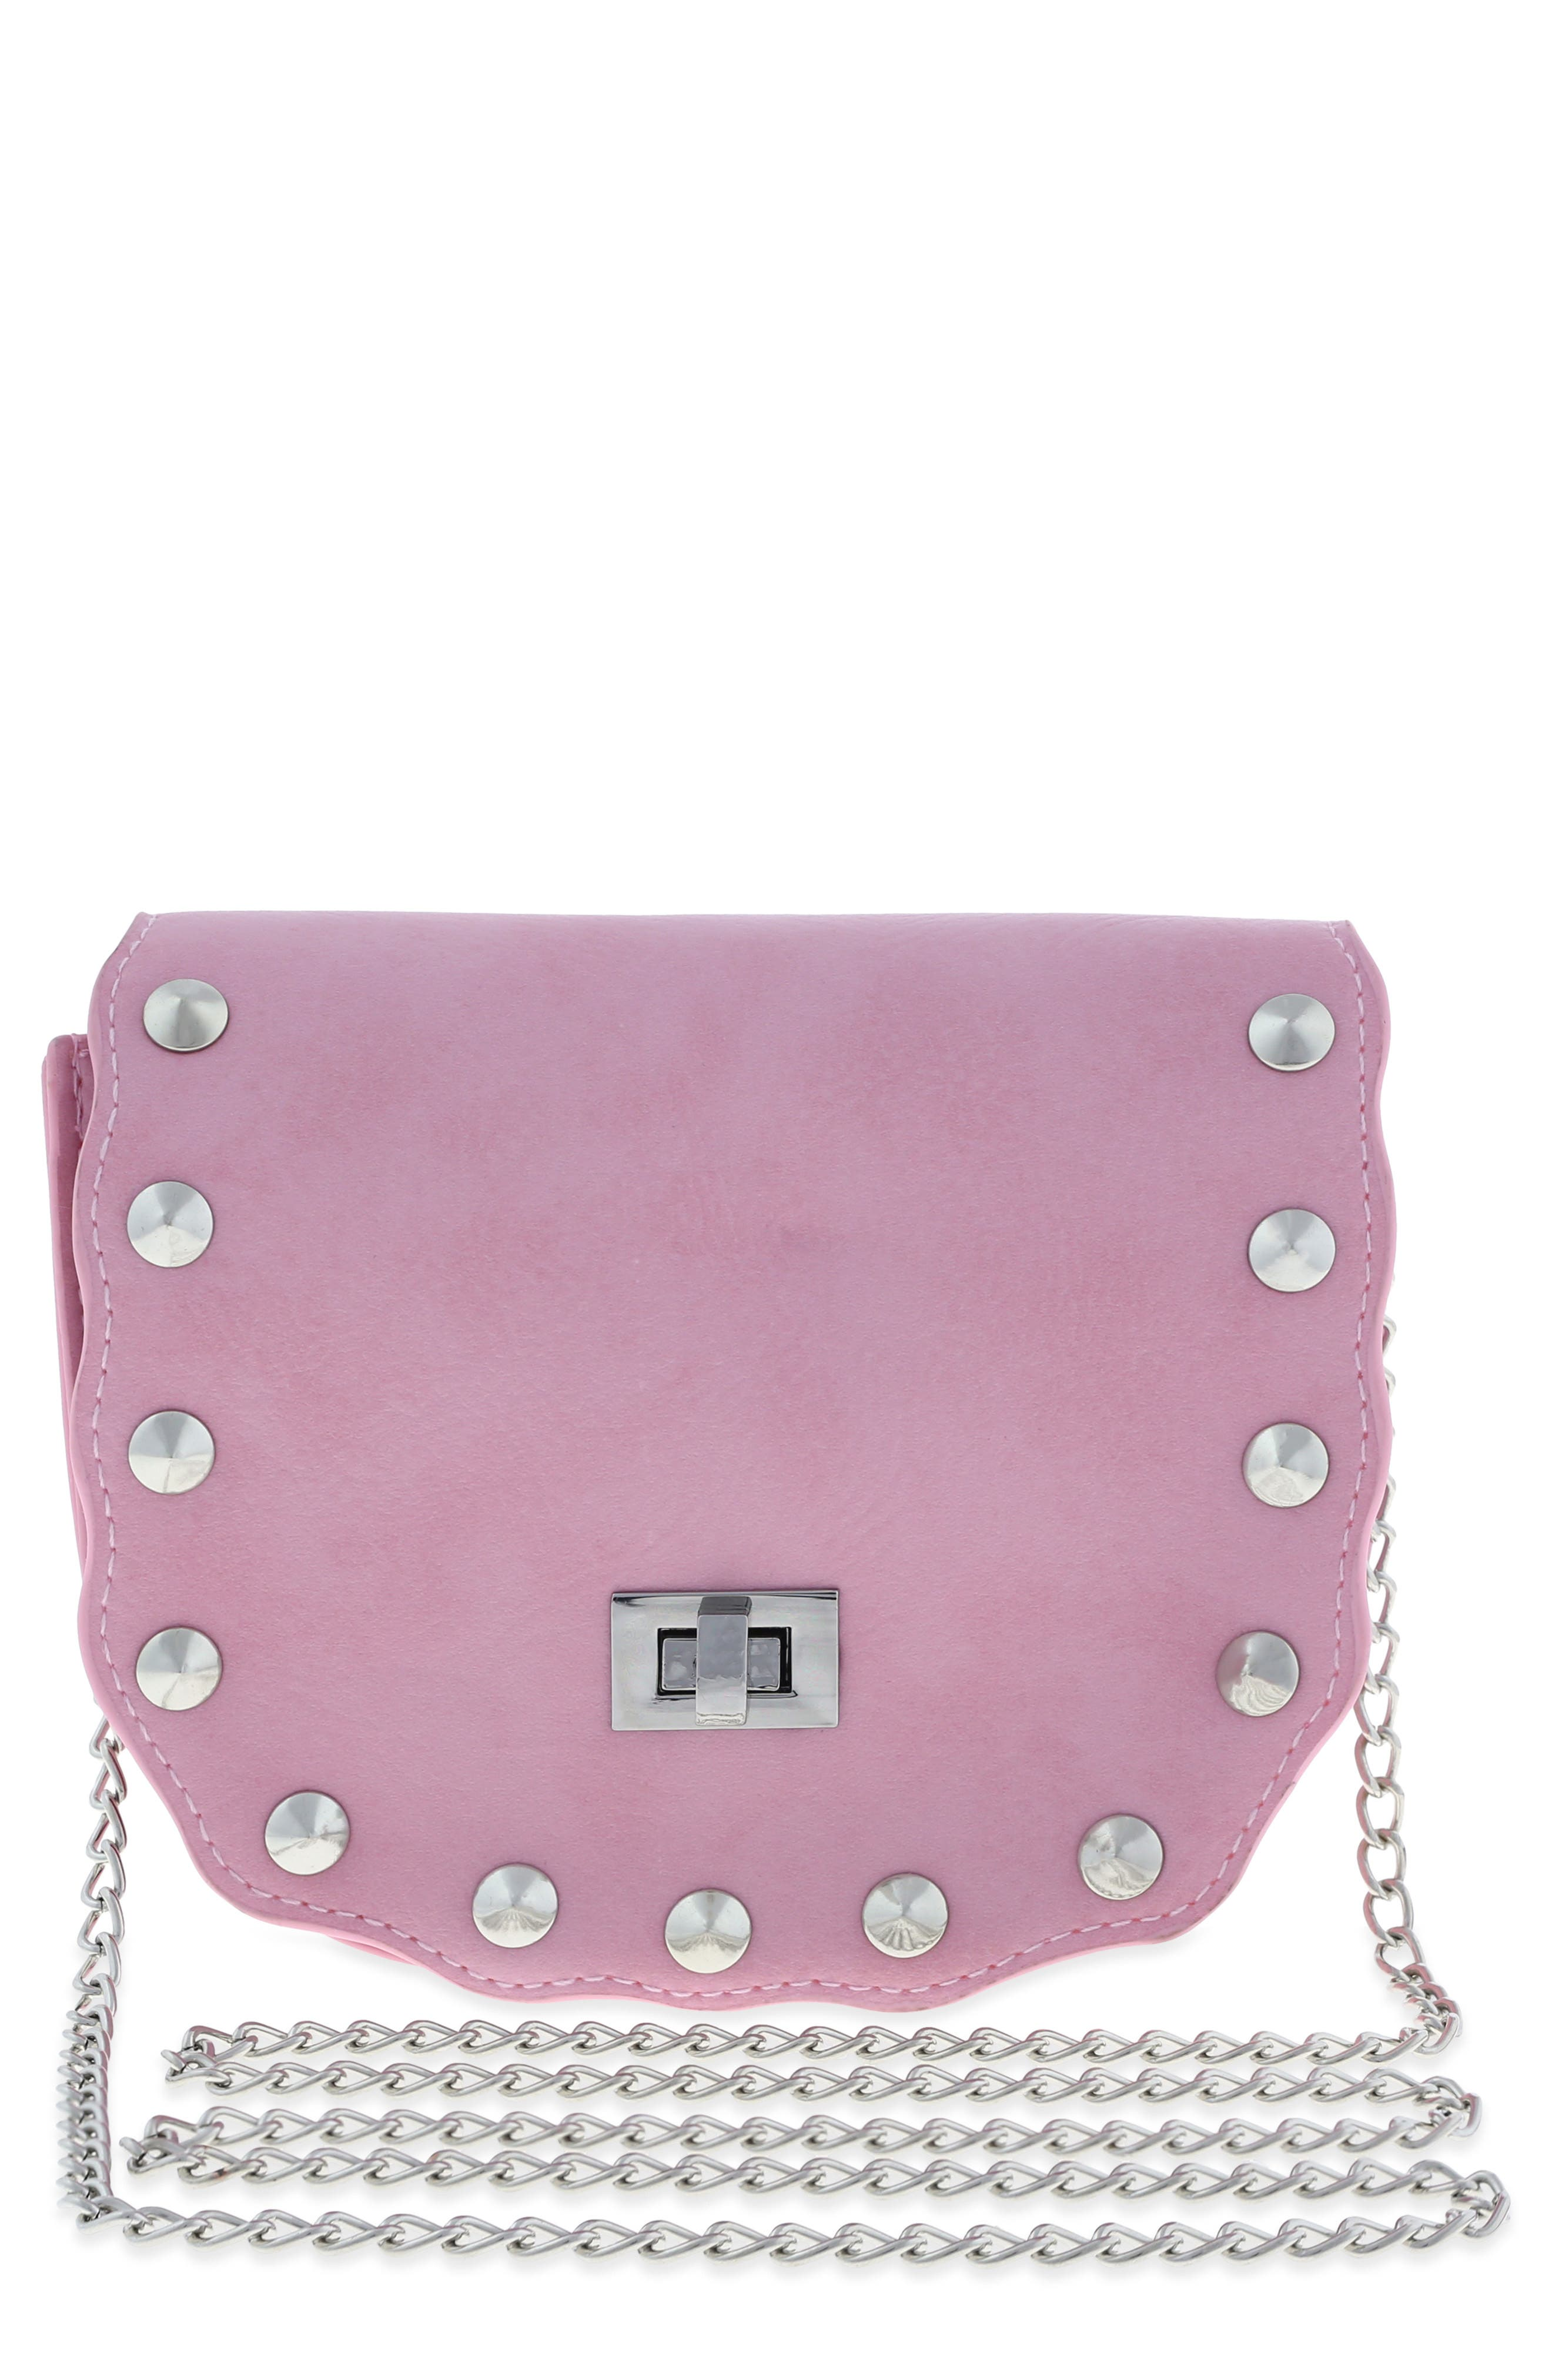 Studded Bag,                             Main thumbnail 1, color,                             659